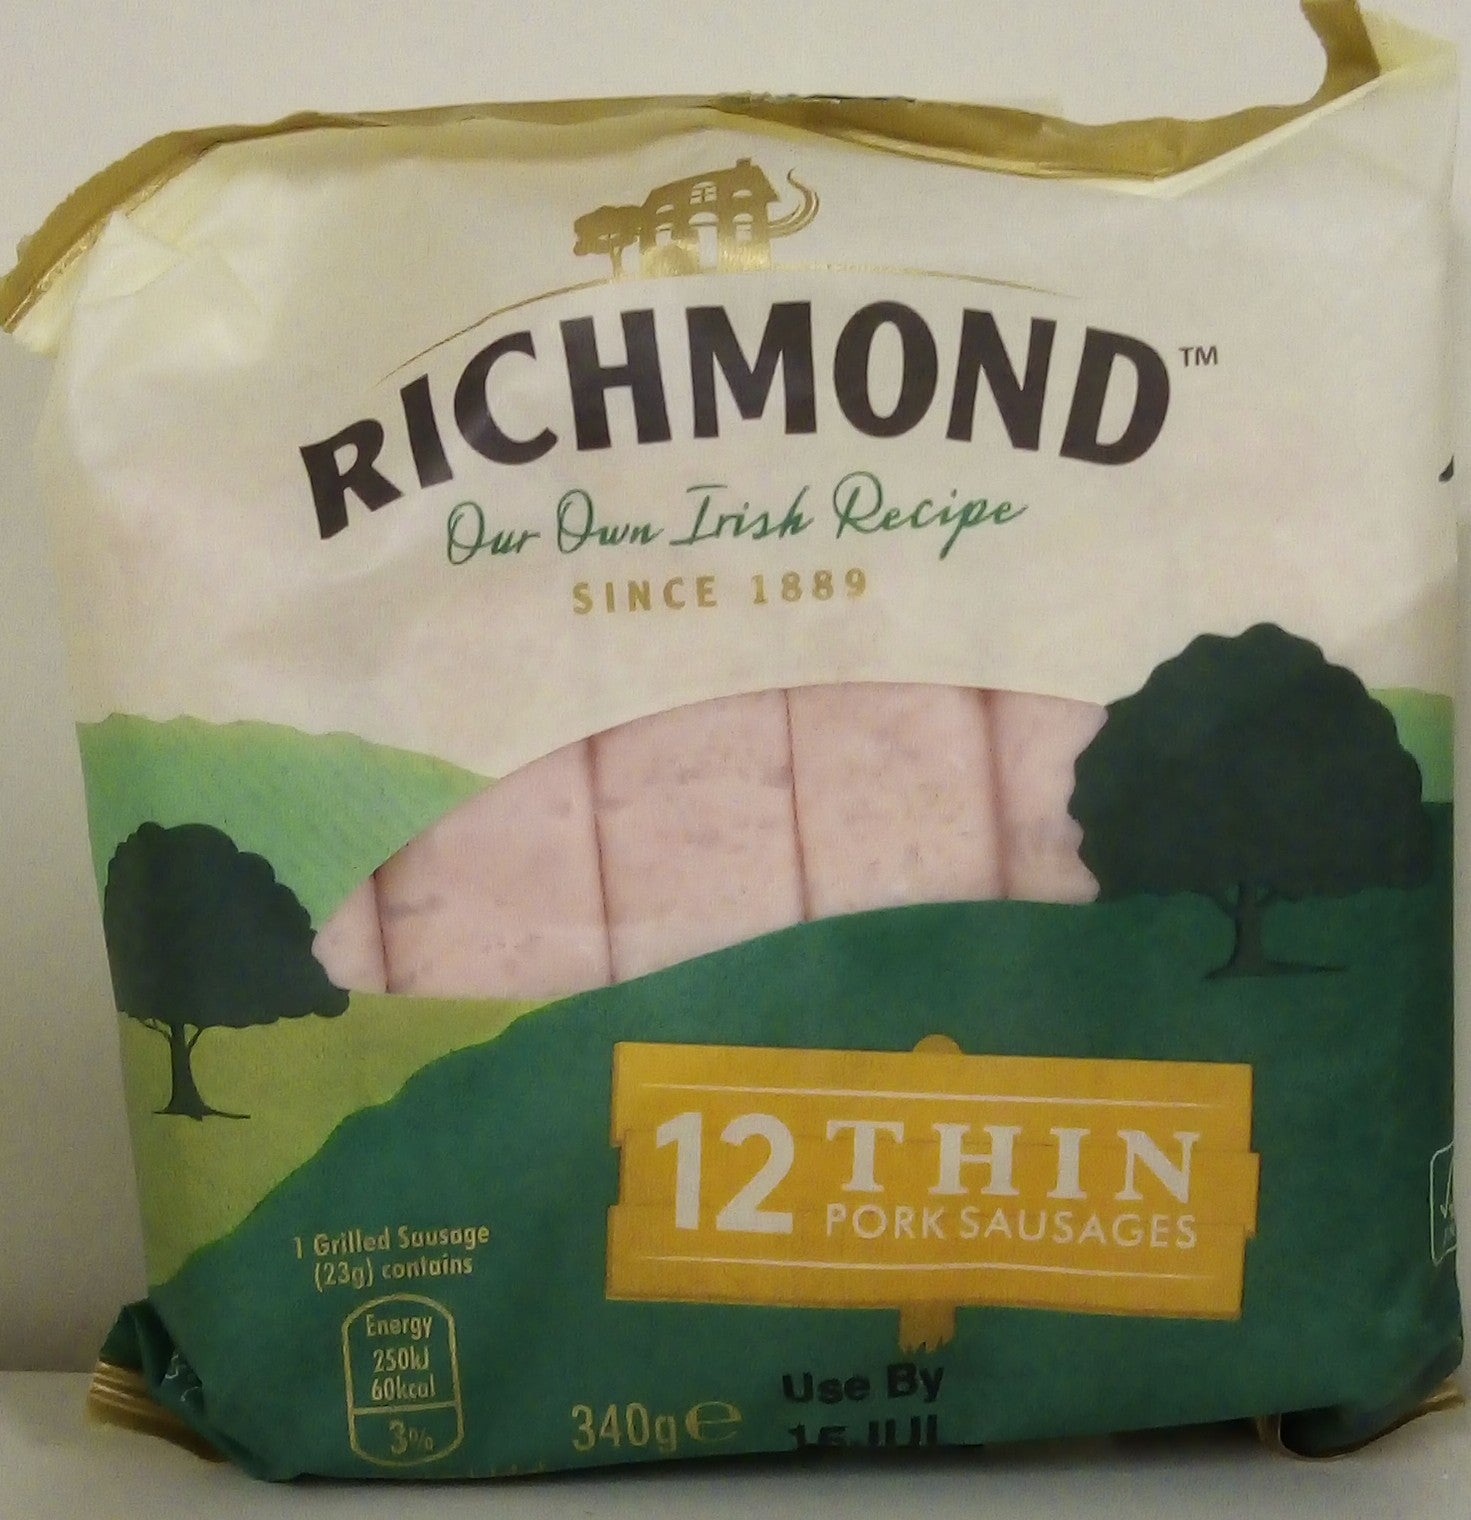 Richmond 12 Thin Pork Sausages 340g